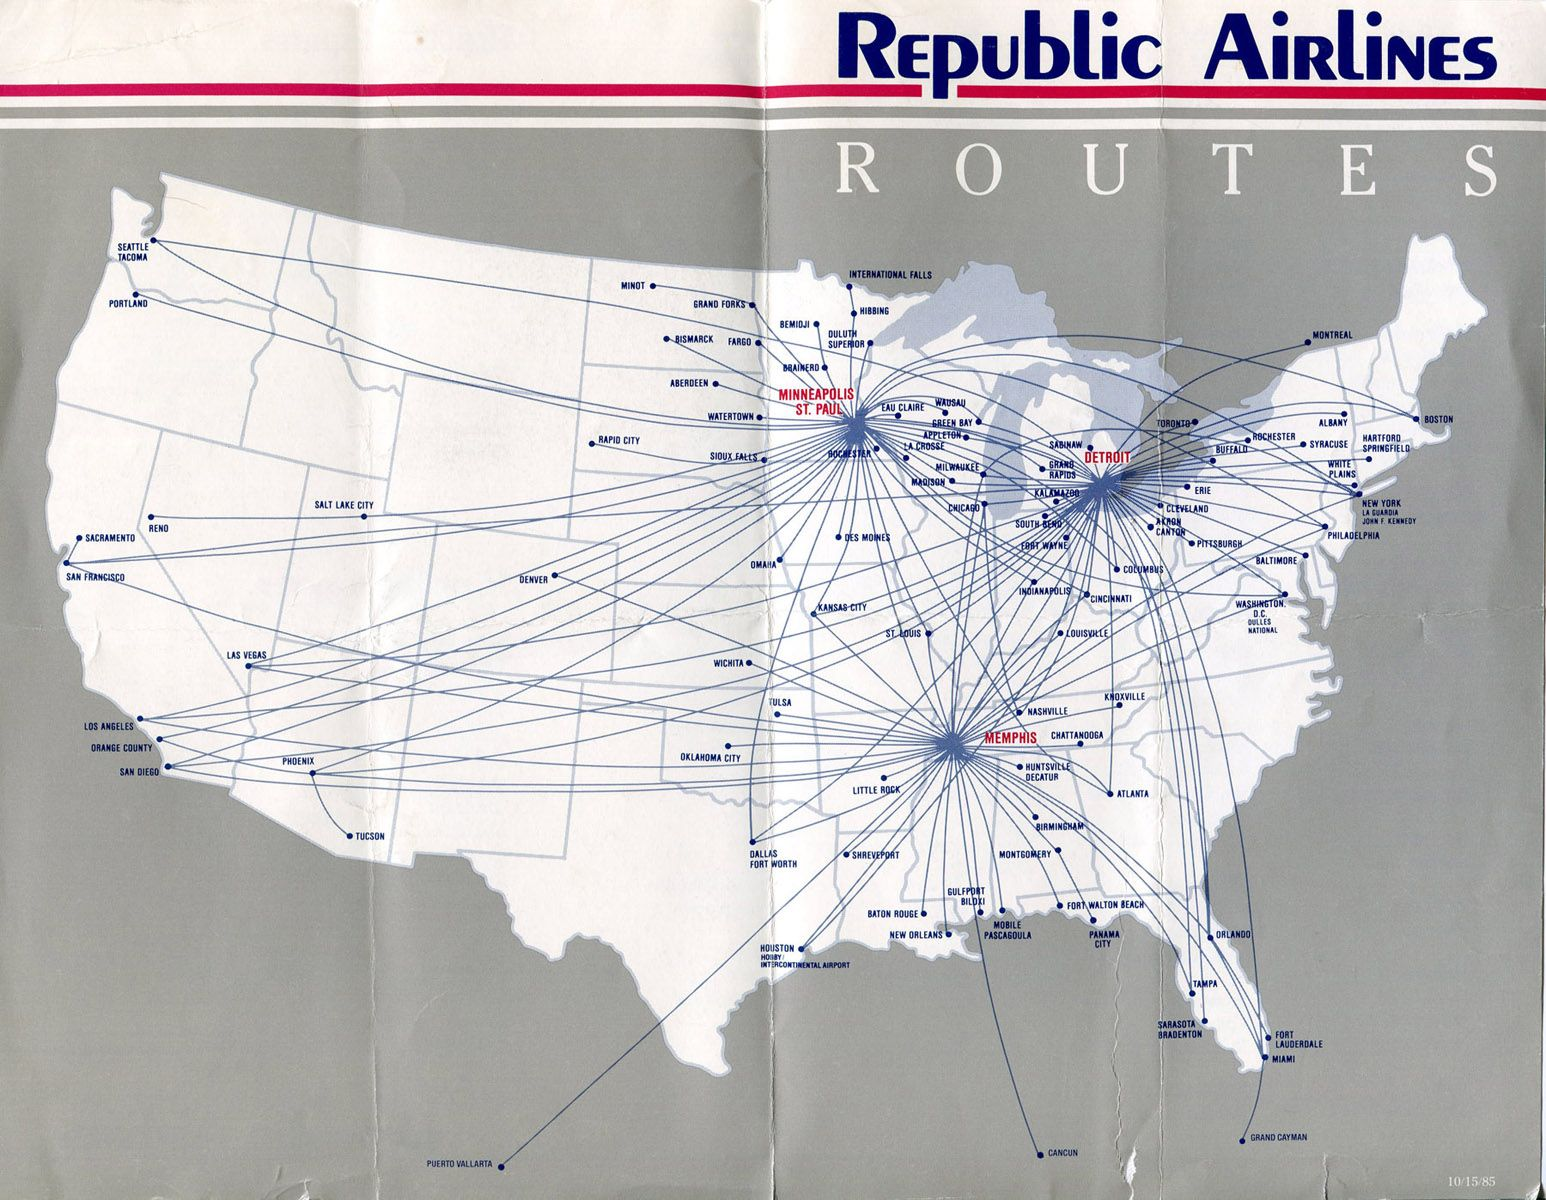 1986 Republic Airlines Timetables Route Maps History And